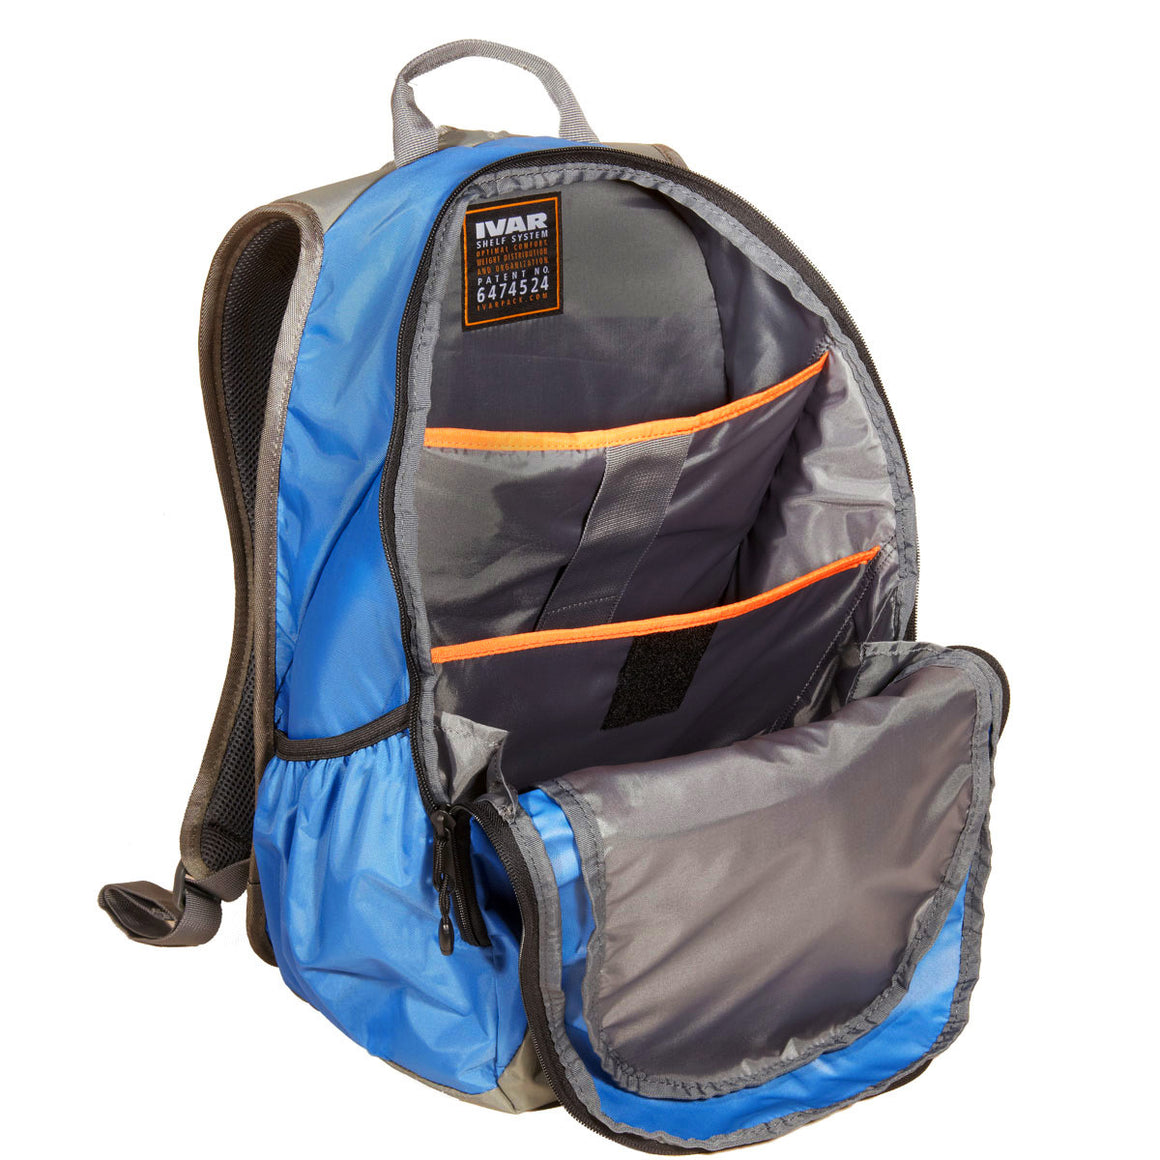 IVAR Zug 30 Everyday Light-Weight Backpack